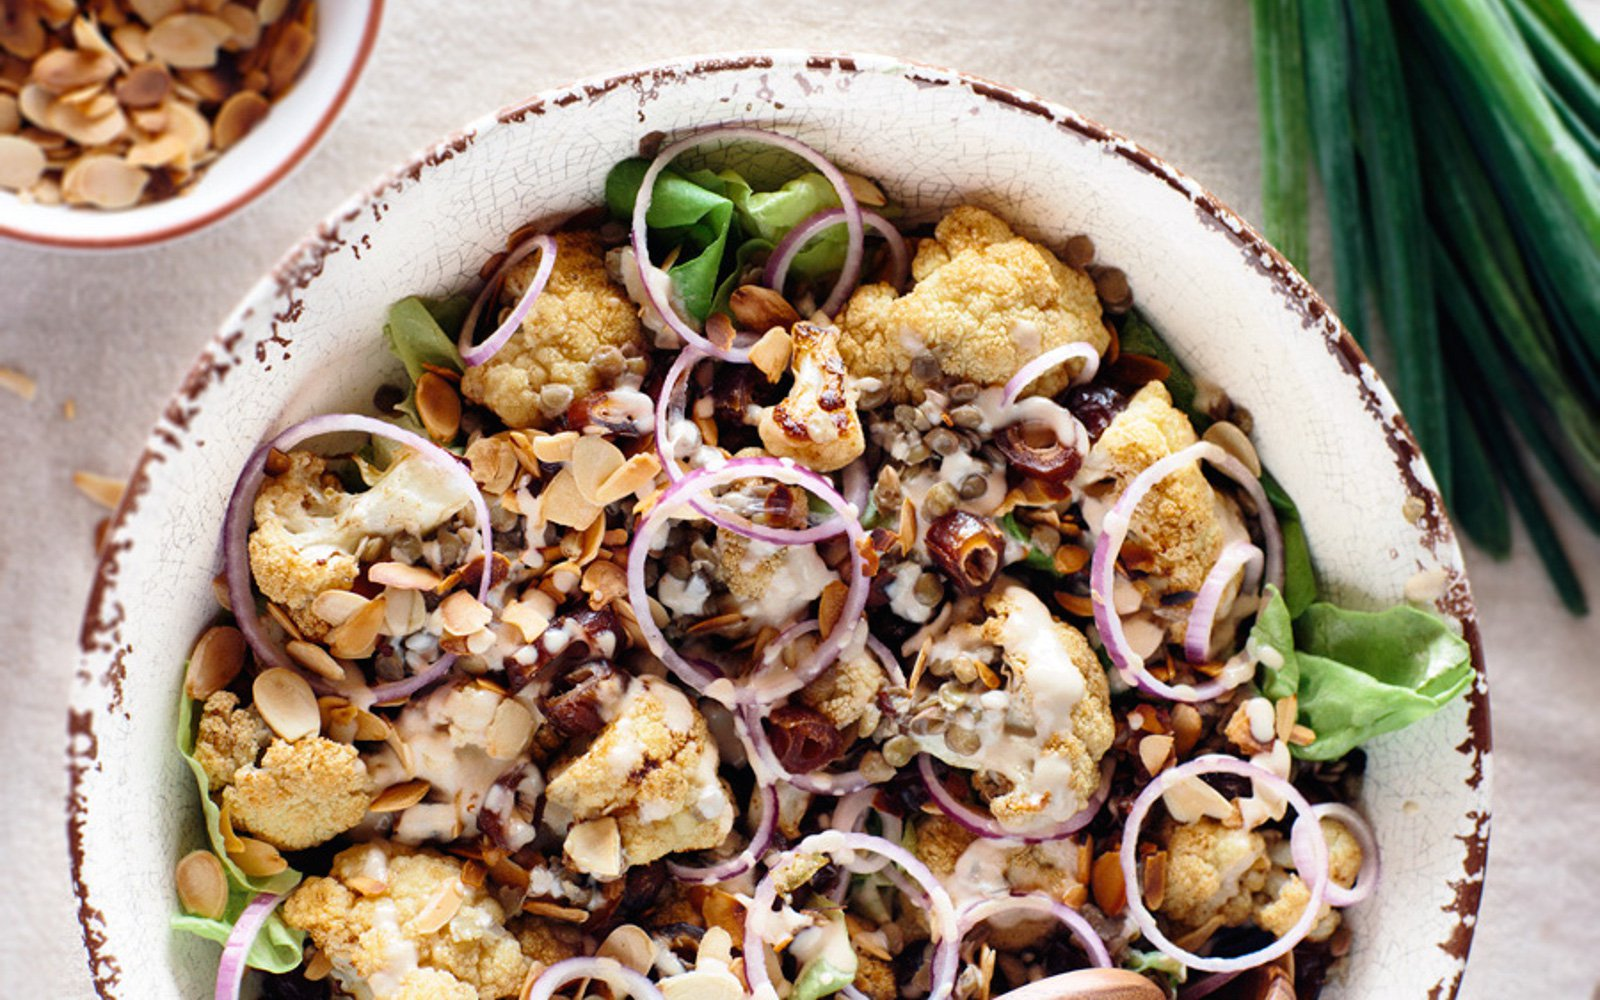 ROASTED CAULIFLOWER SALAD WITH DATES